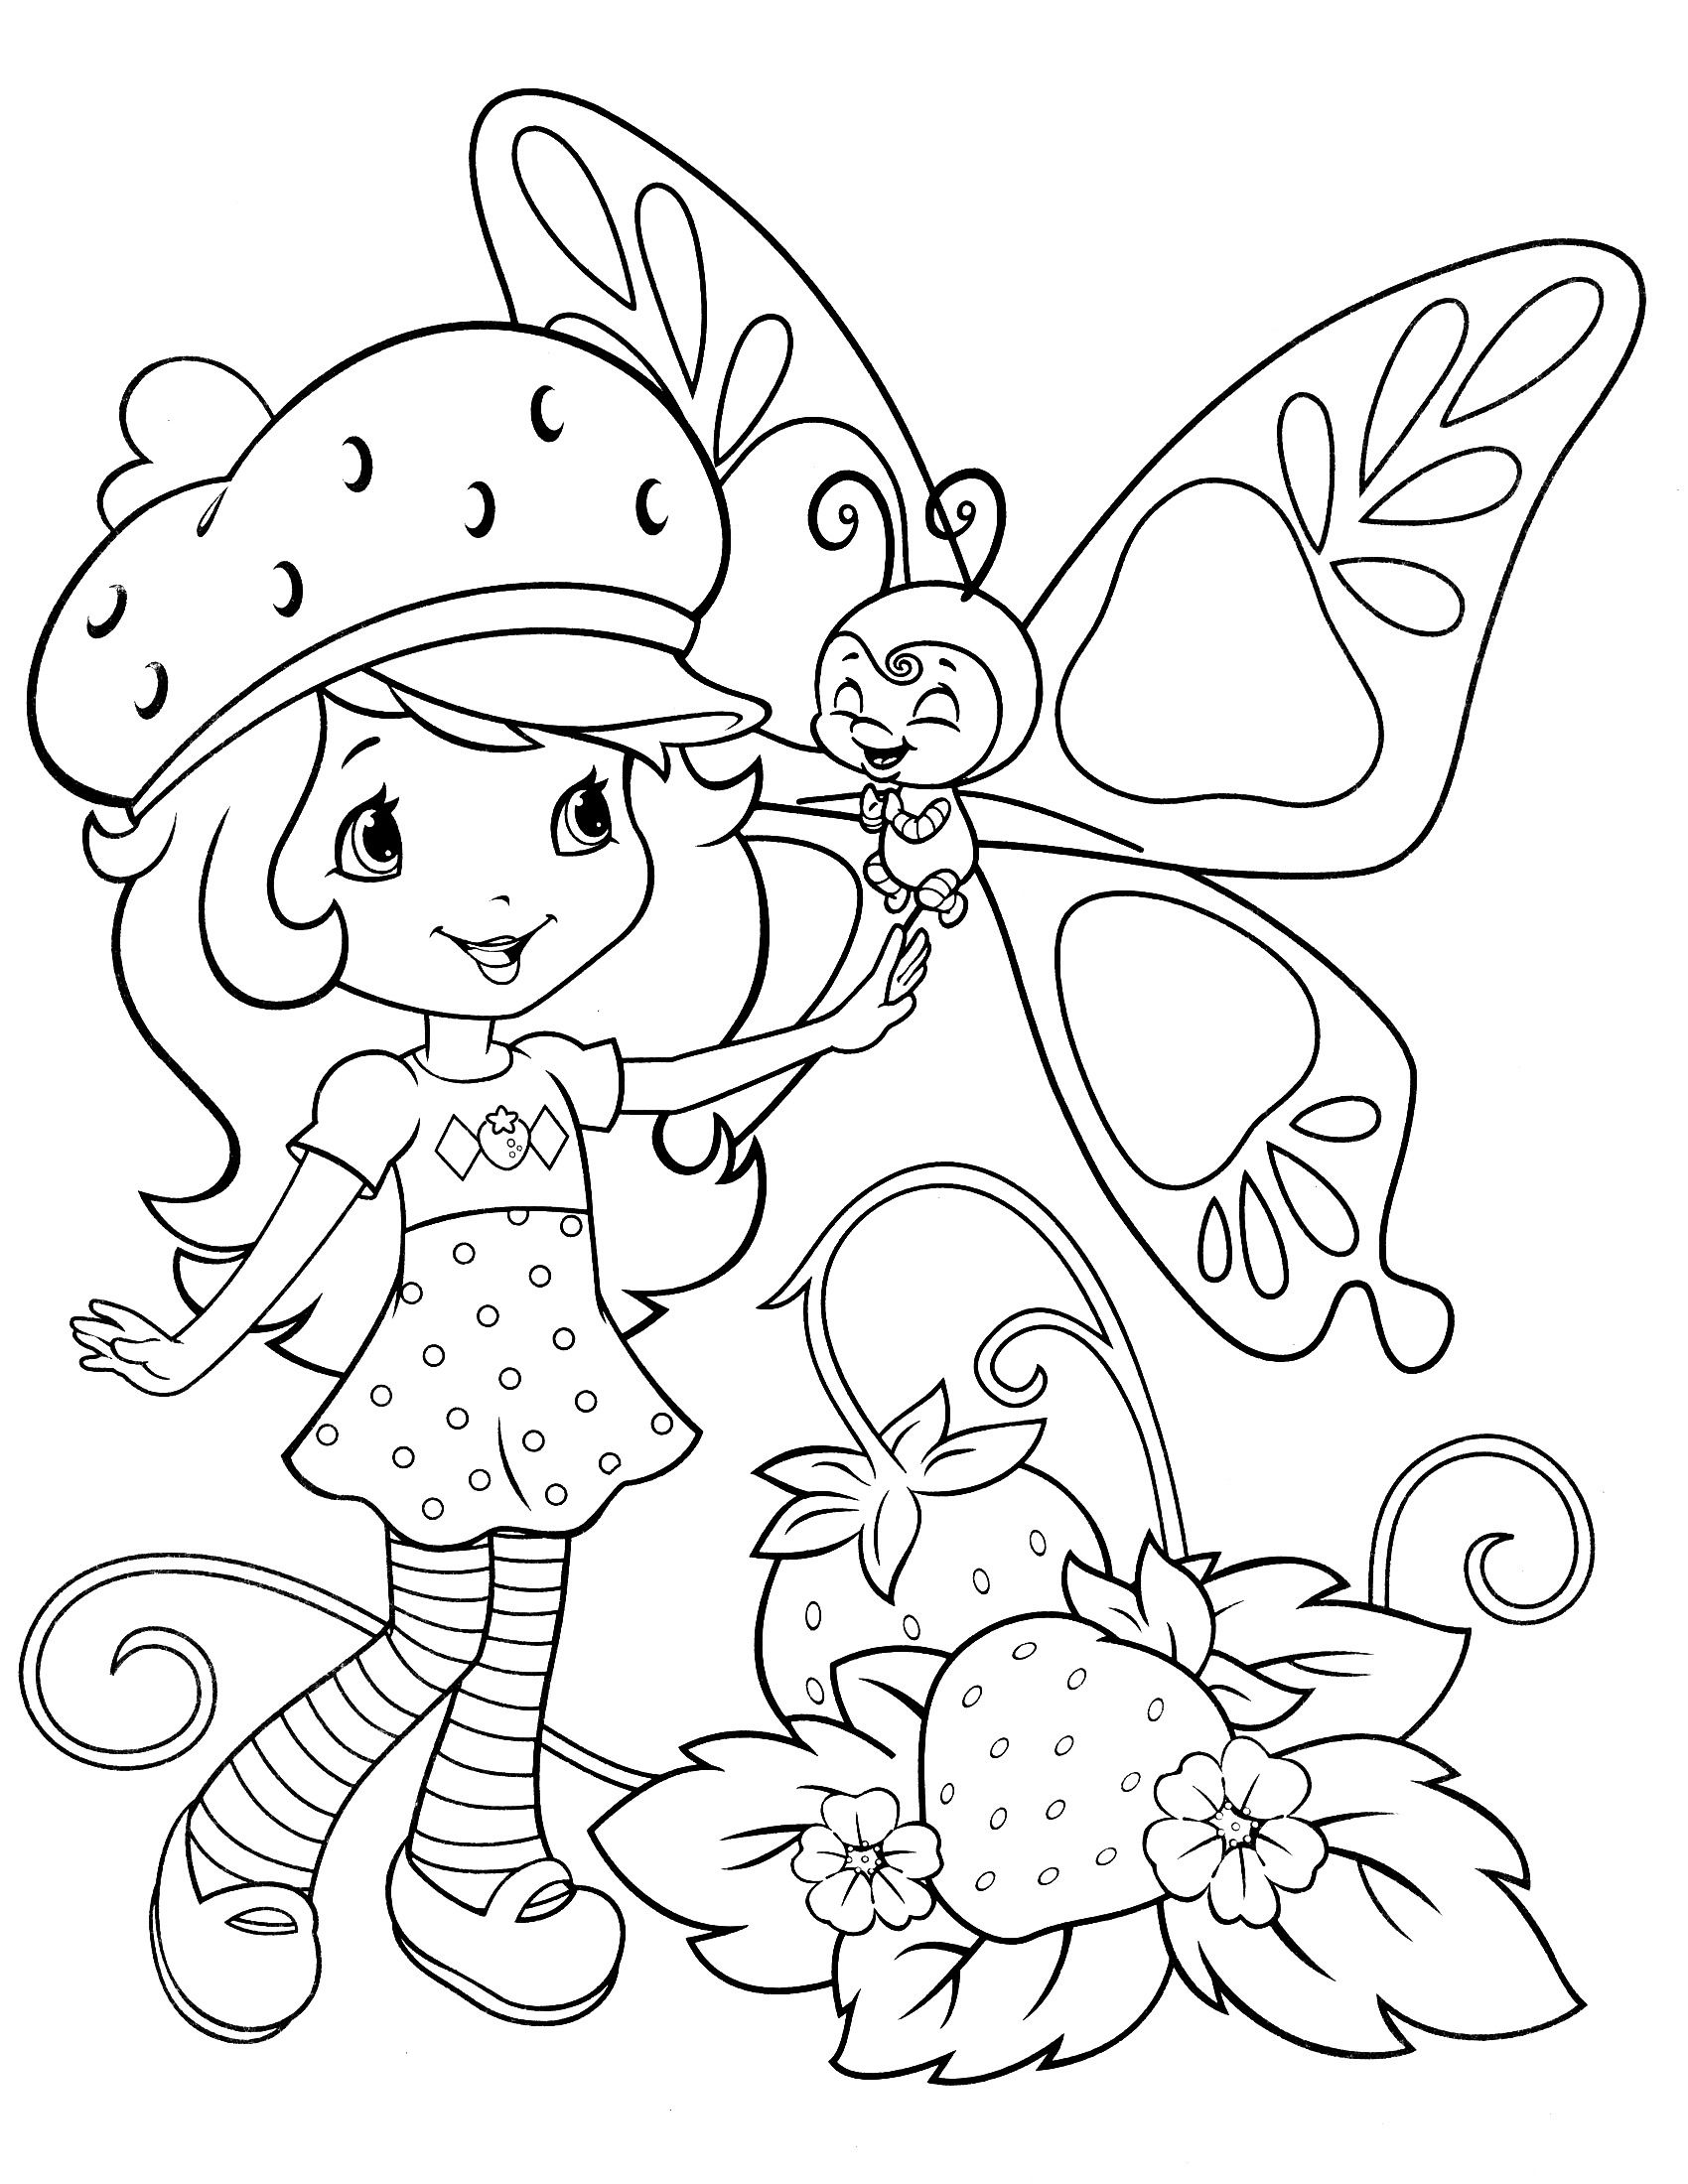 Strawberry shortcake coloring pages butterfly aas